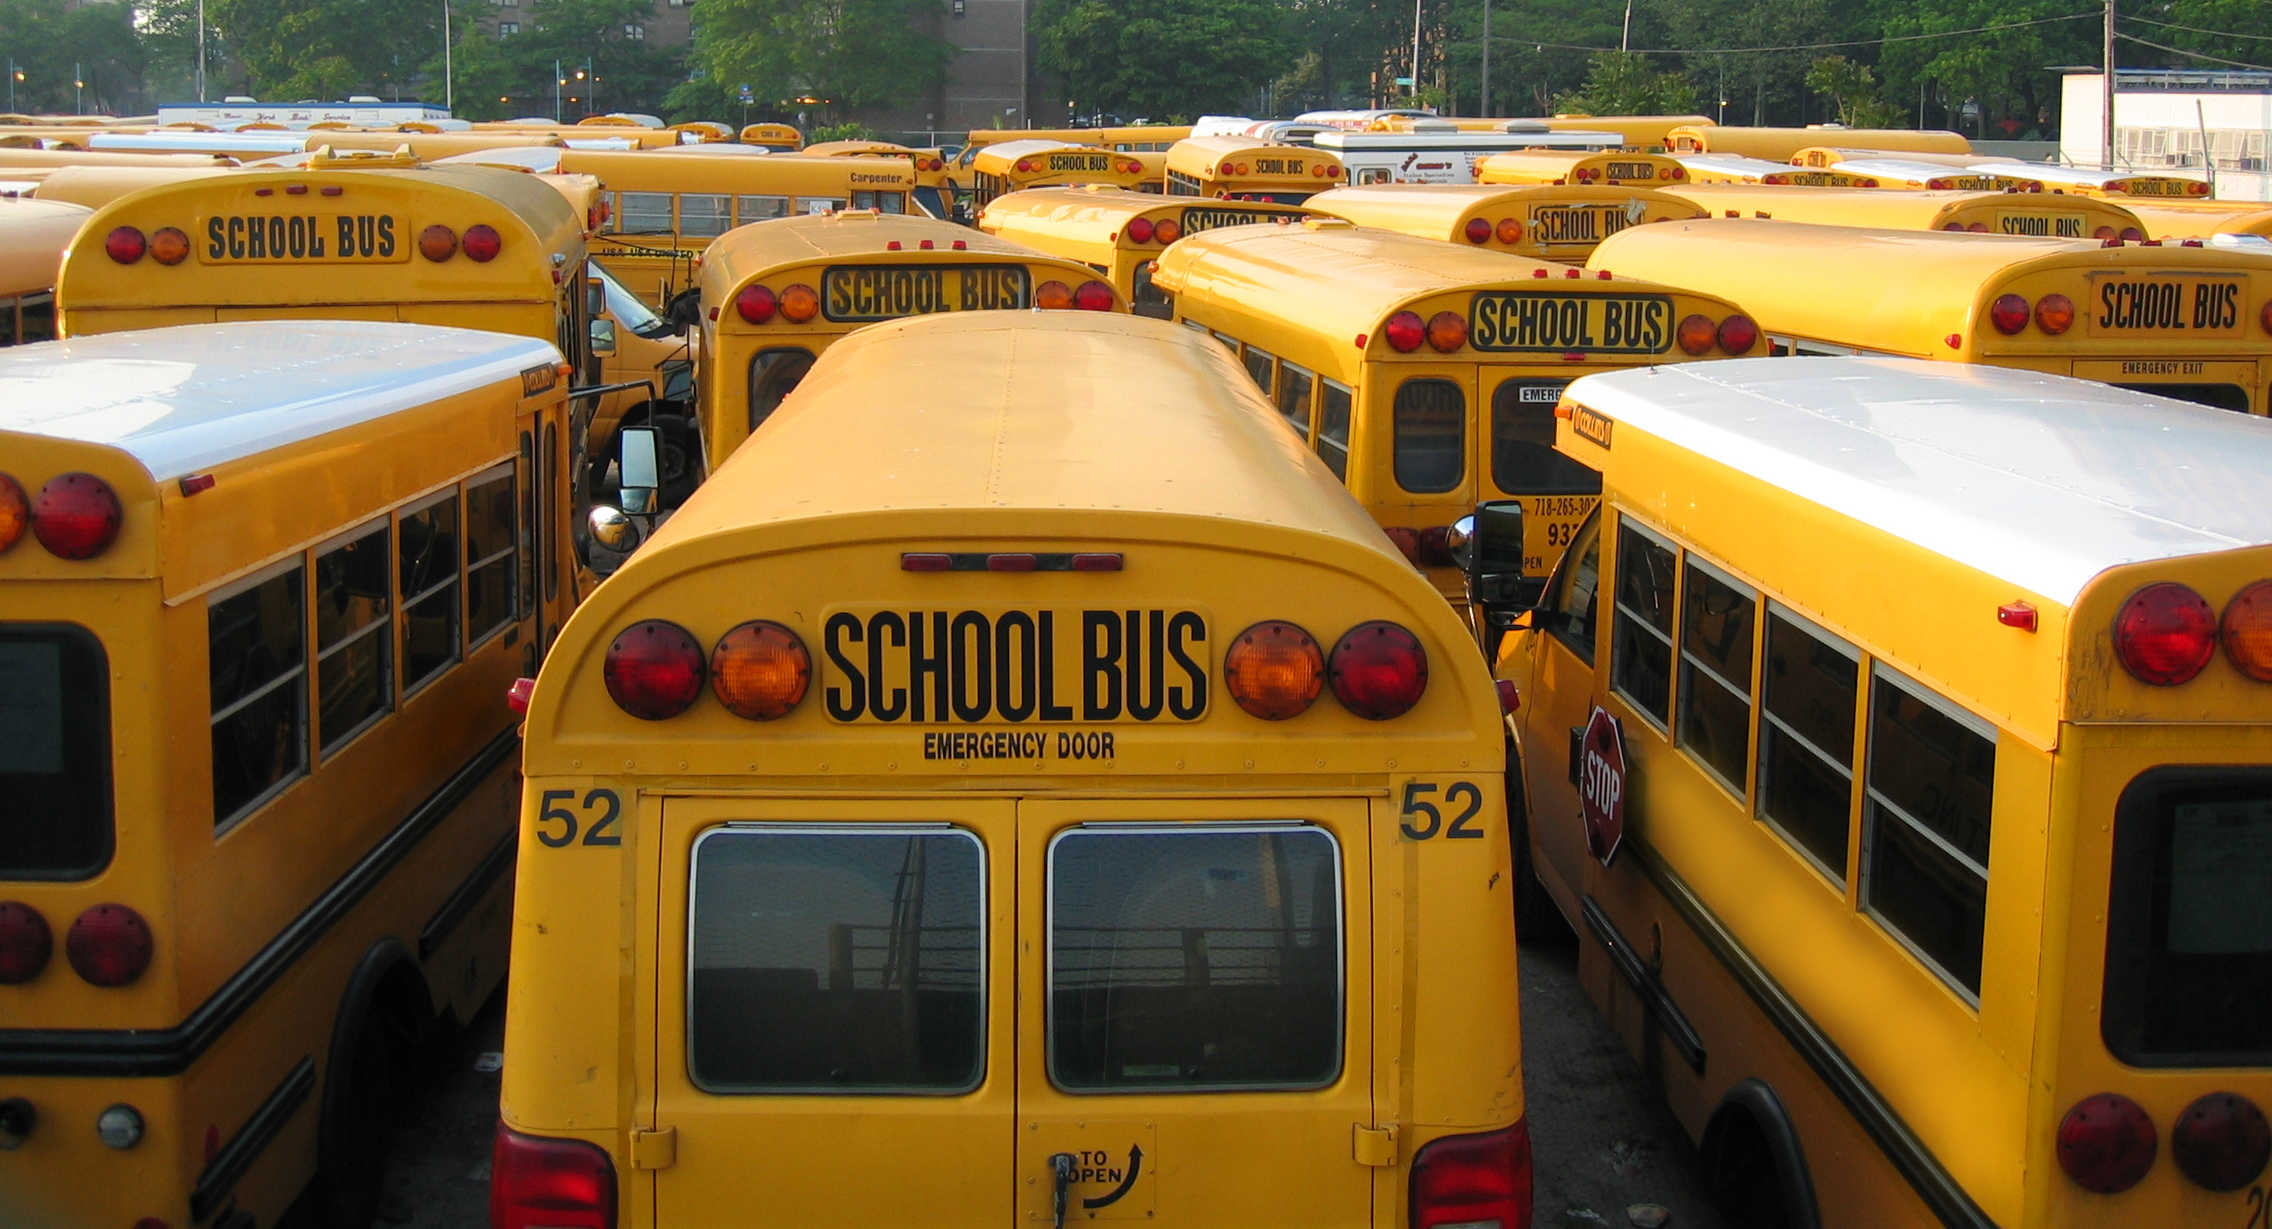 City of Richmond School systems found that by switching to wet-hosing to fuel their buses daily they were able to save their drivers an average of 30 minutes a day, allowing them to cut over $400,000 from their budget annually.